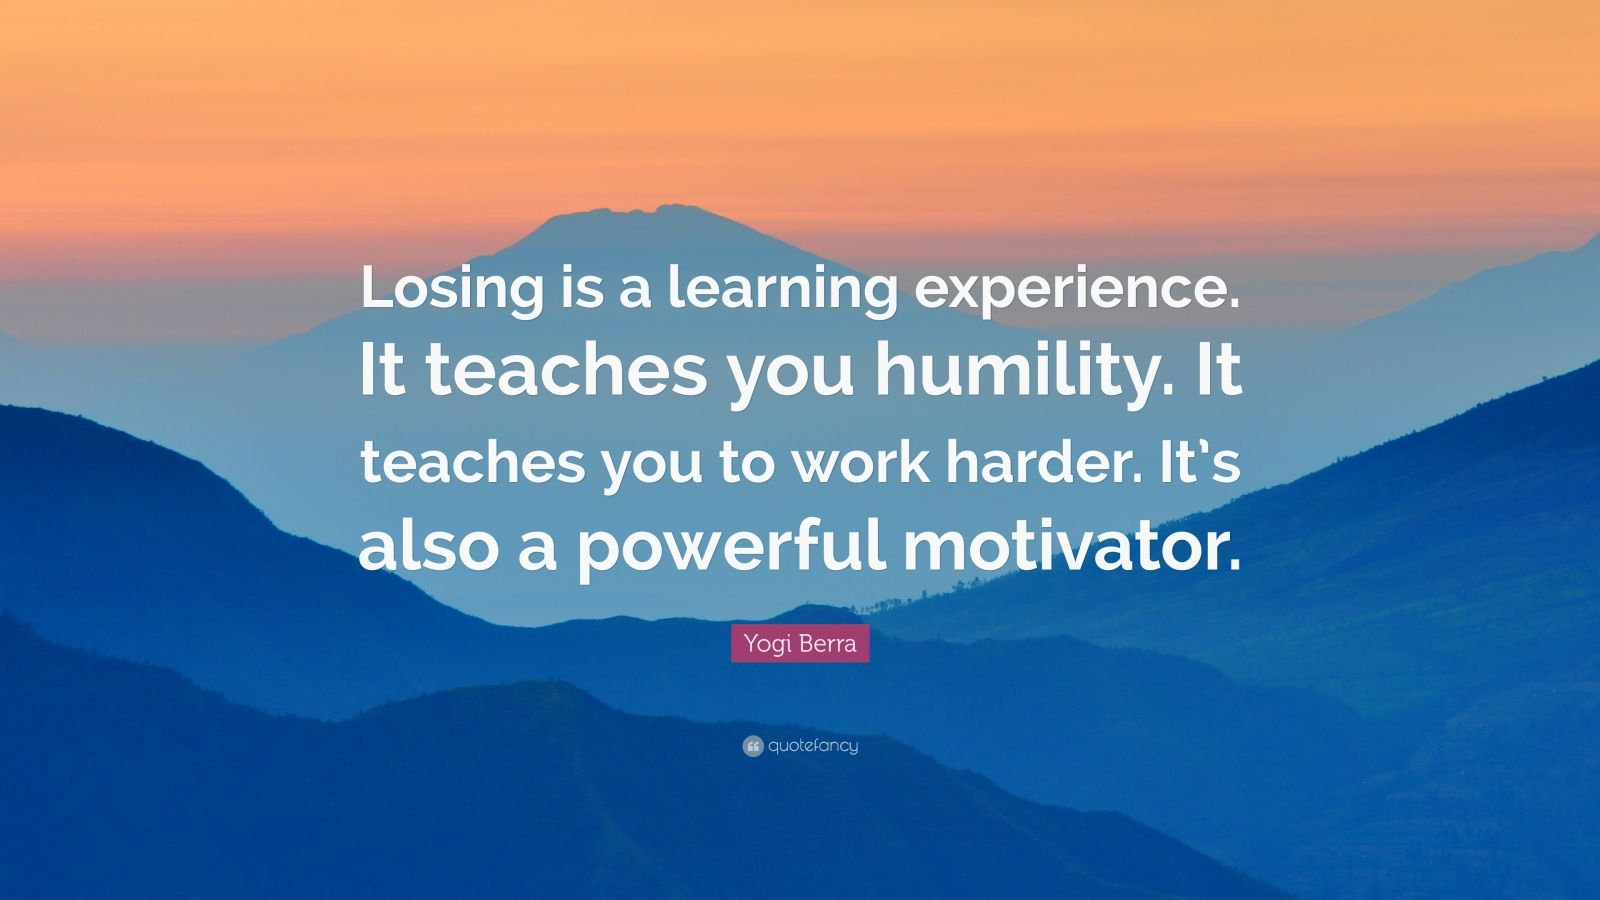 """Yogi Berra Quote: """"Losing is a learning experience. It teaches you humility. It teaches you to work harder. It's also a powerful motivator."""""""